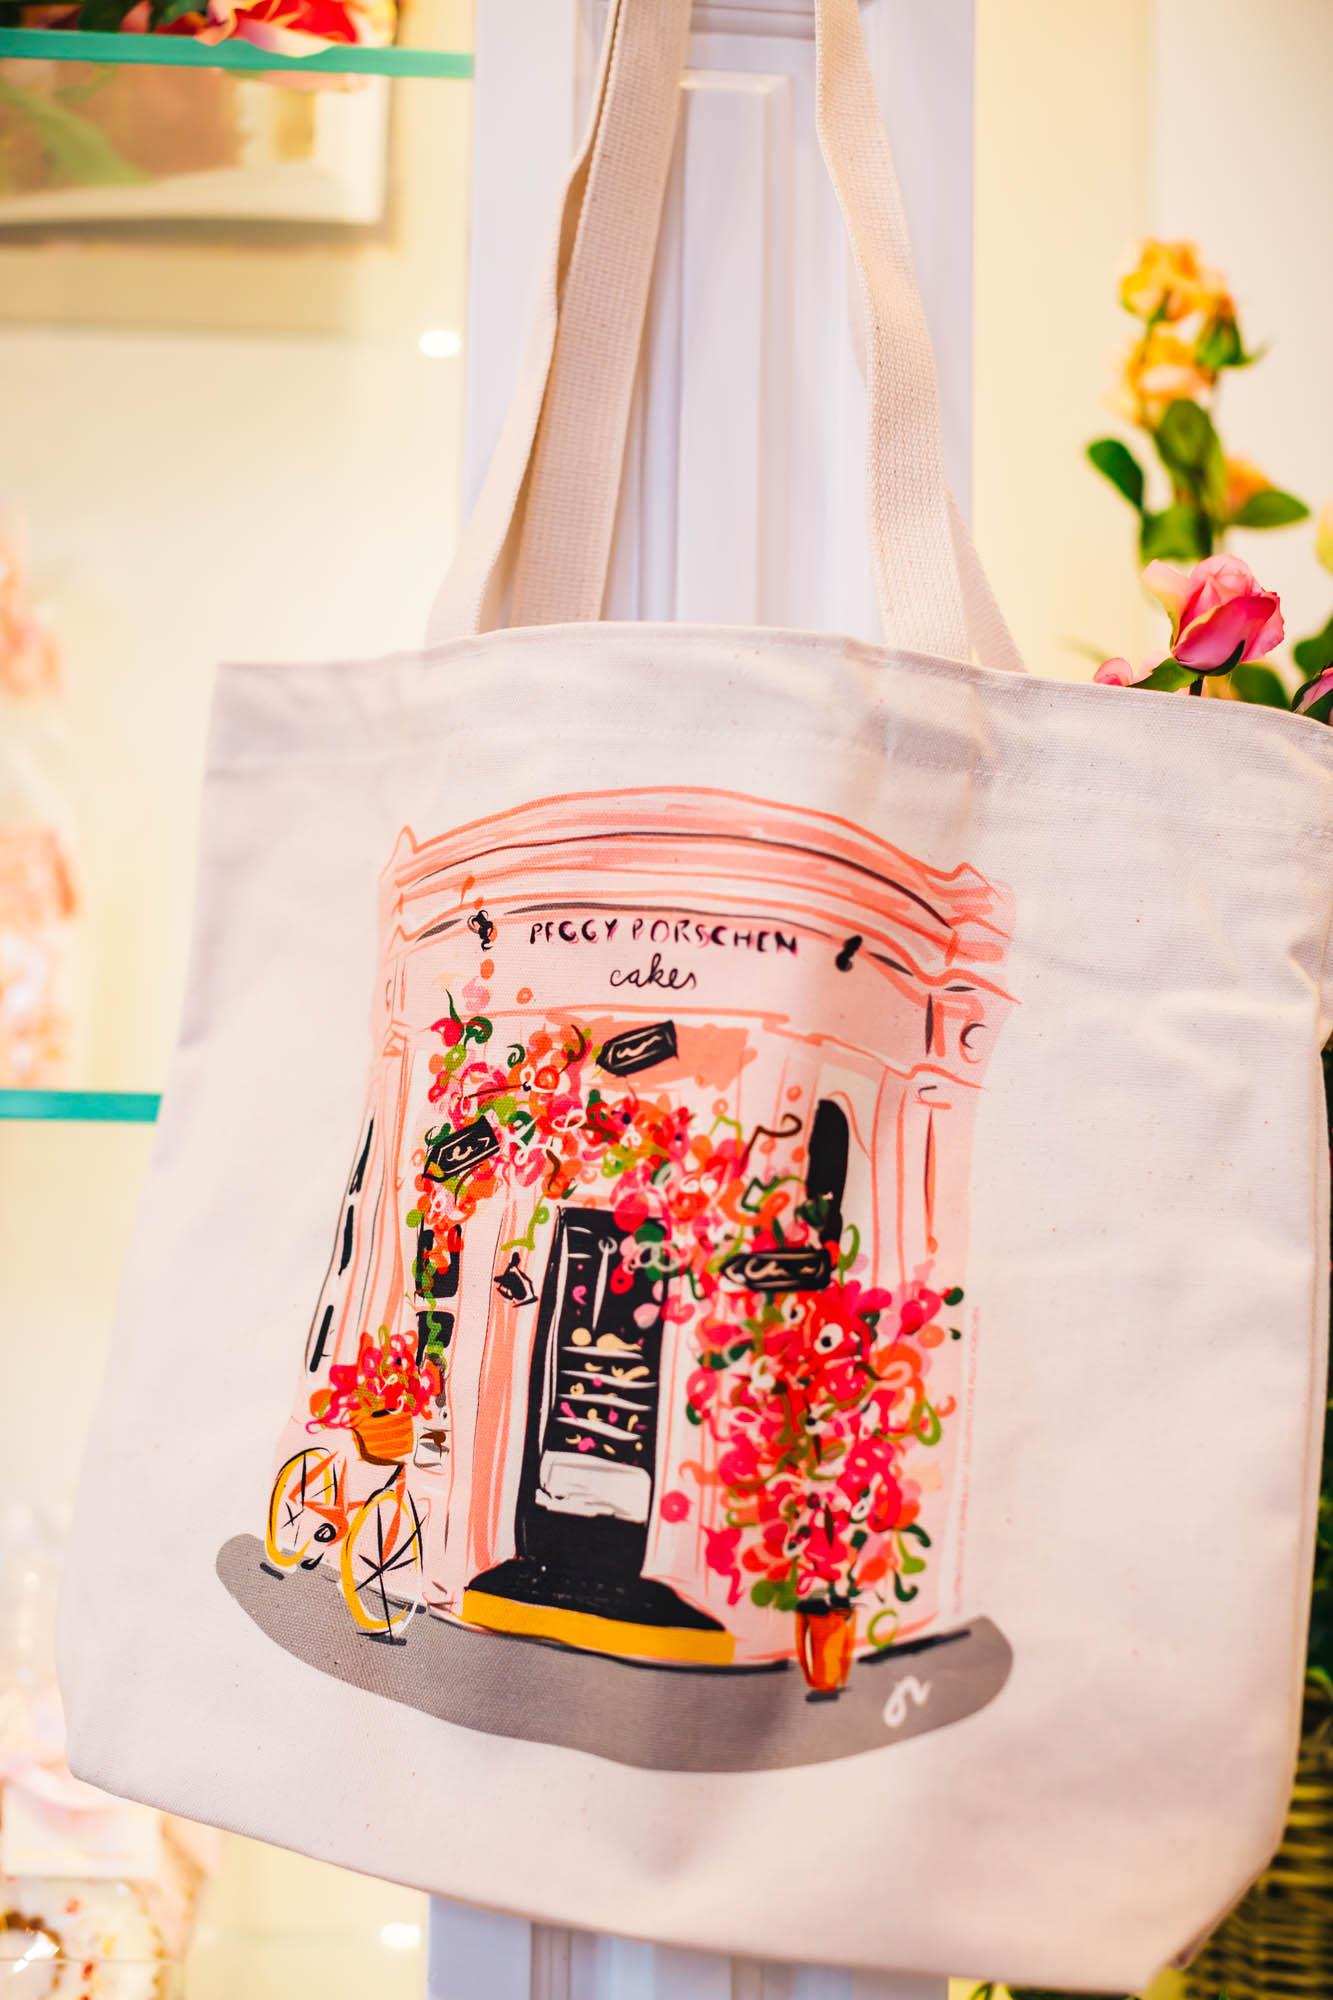 Lovely bag to match with the beautiful cupcakes